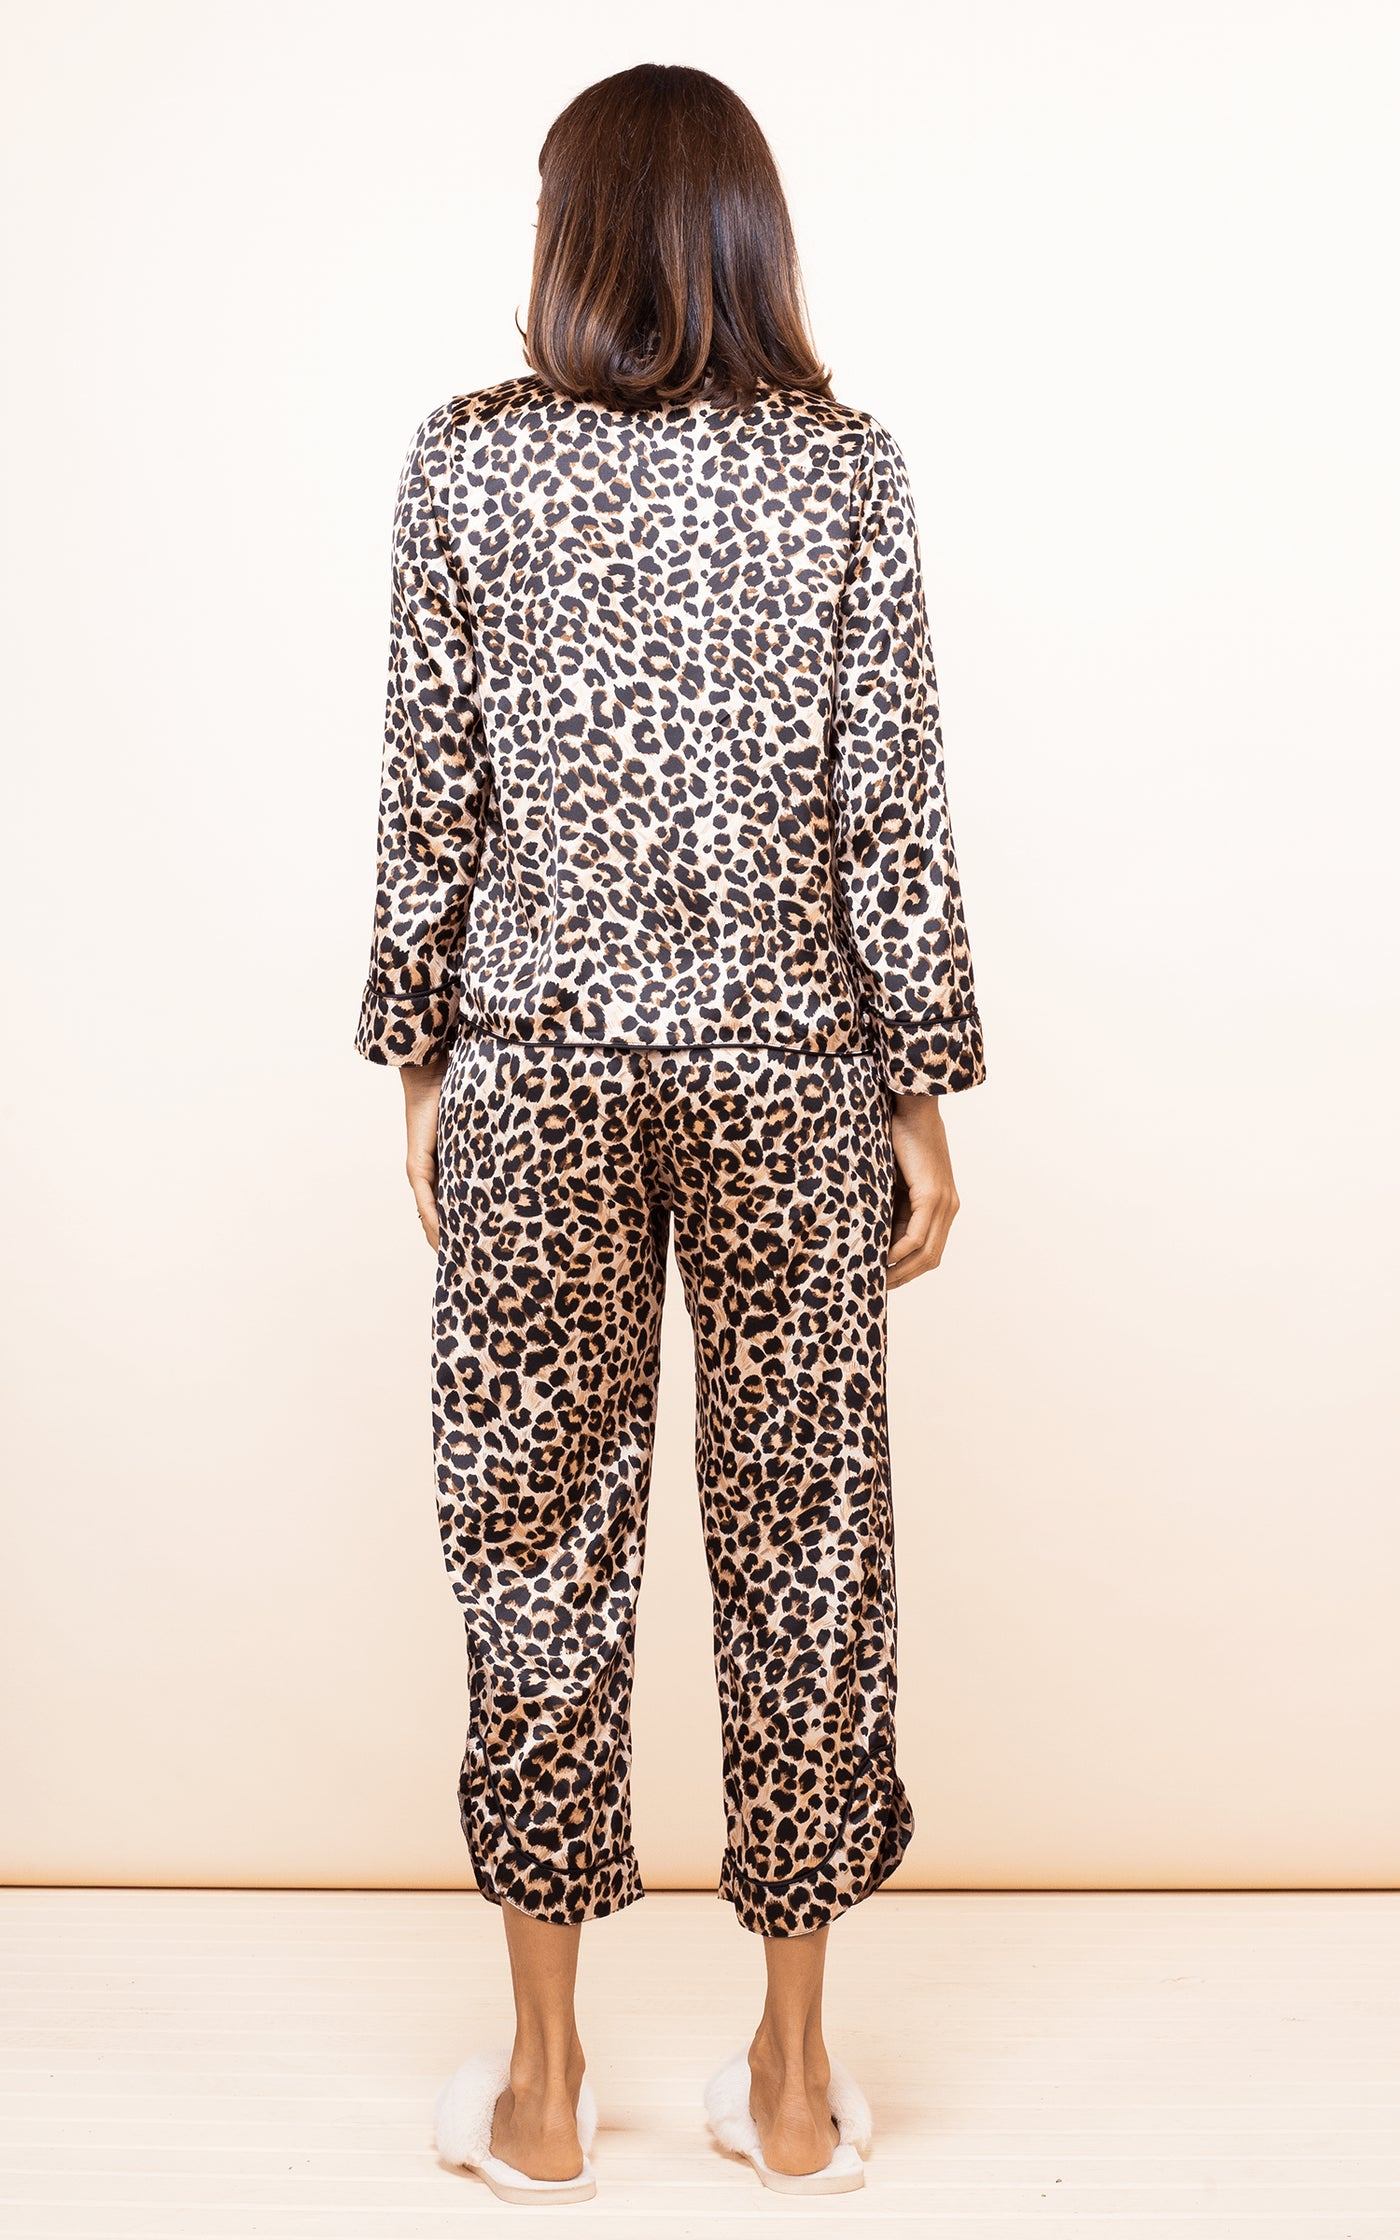 Dancing Leopard model faces backwards wearing Enya PJ Set in Rich Leopard print and slippers